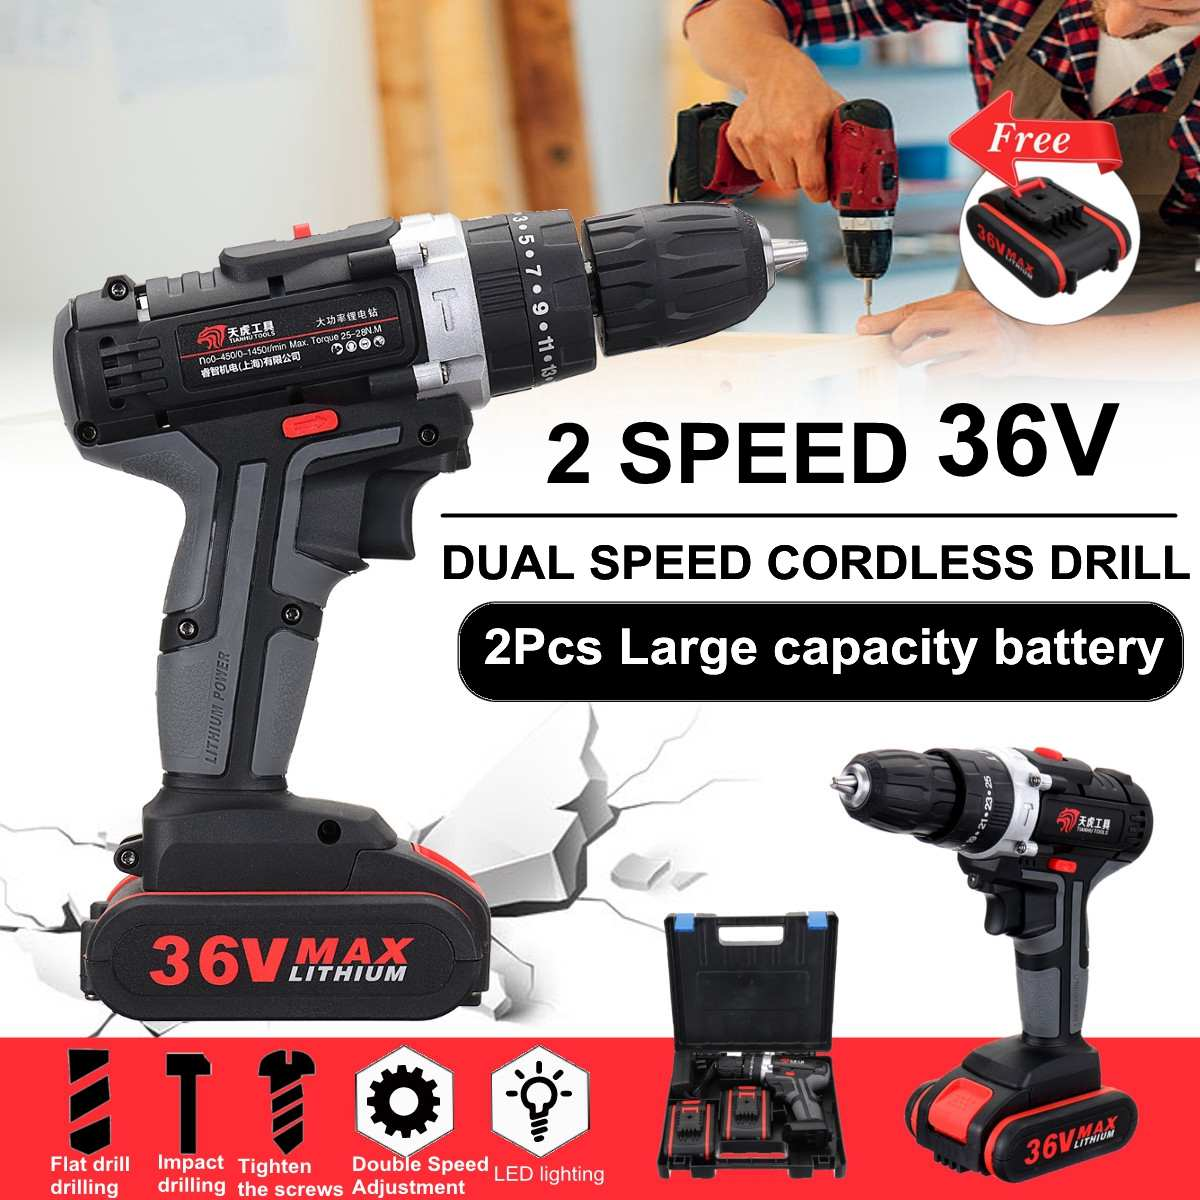 36V Electric Cordless Drill Double-Speed Adjustment LED Worklight Electric Drill Set Wood Drilling Tools36V Electric Cordless Drill Double-Speed Adjustment LED Worklight Electric Drill Set Wood Drilling Tools